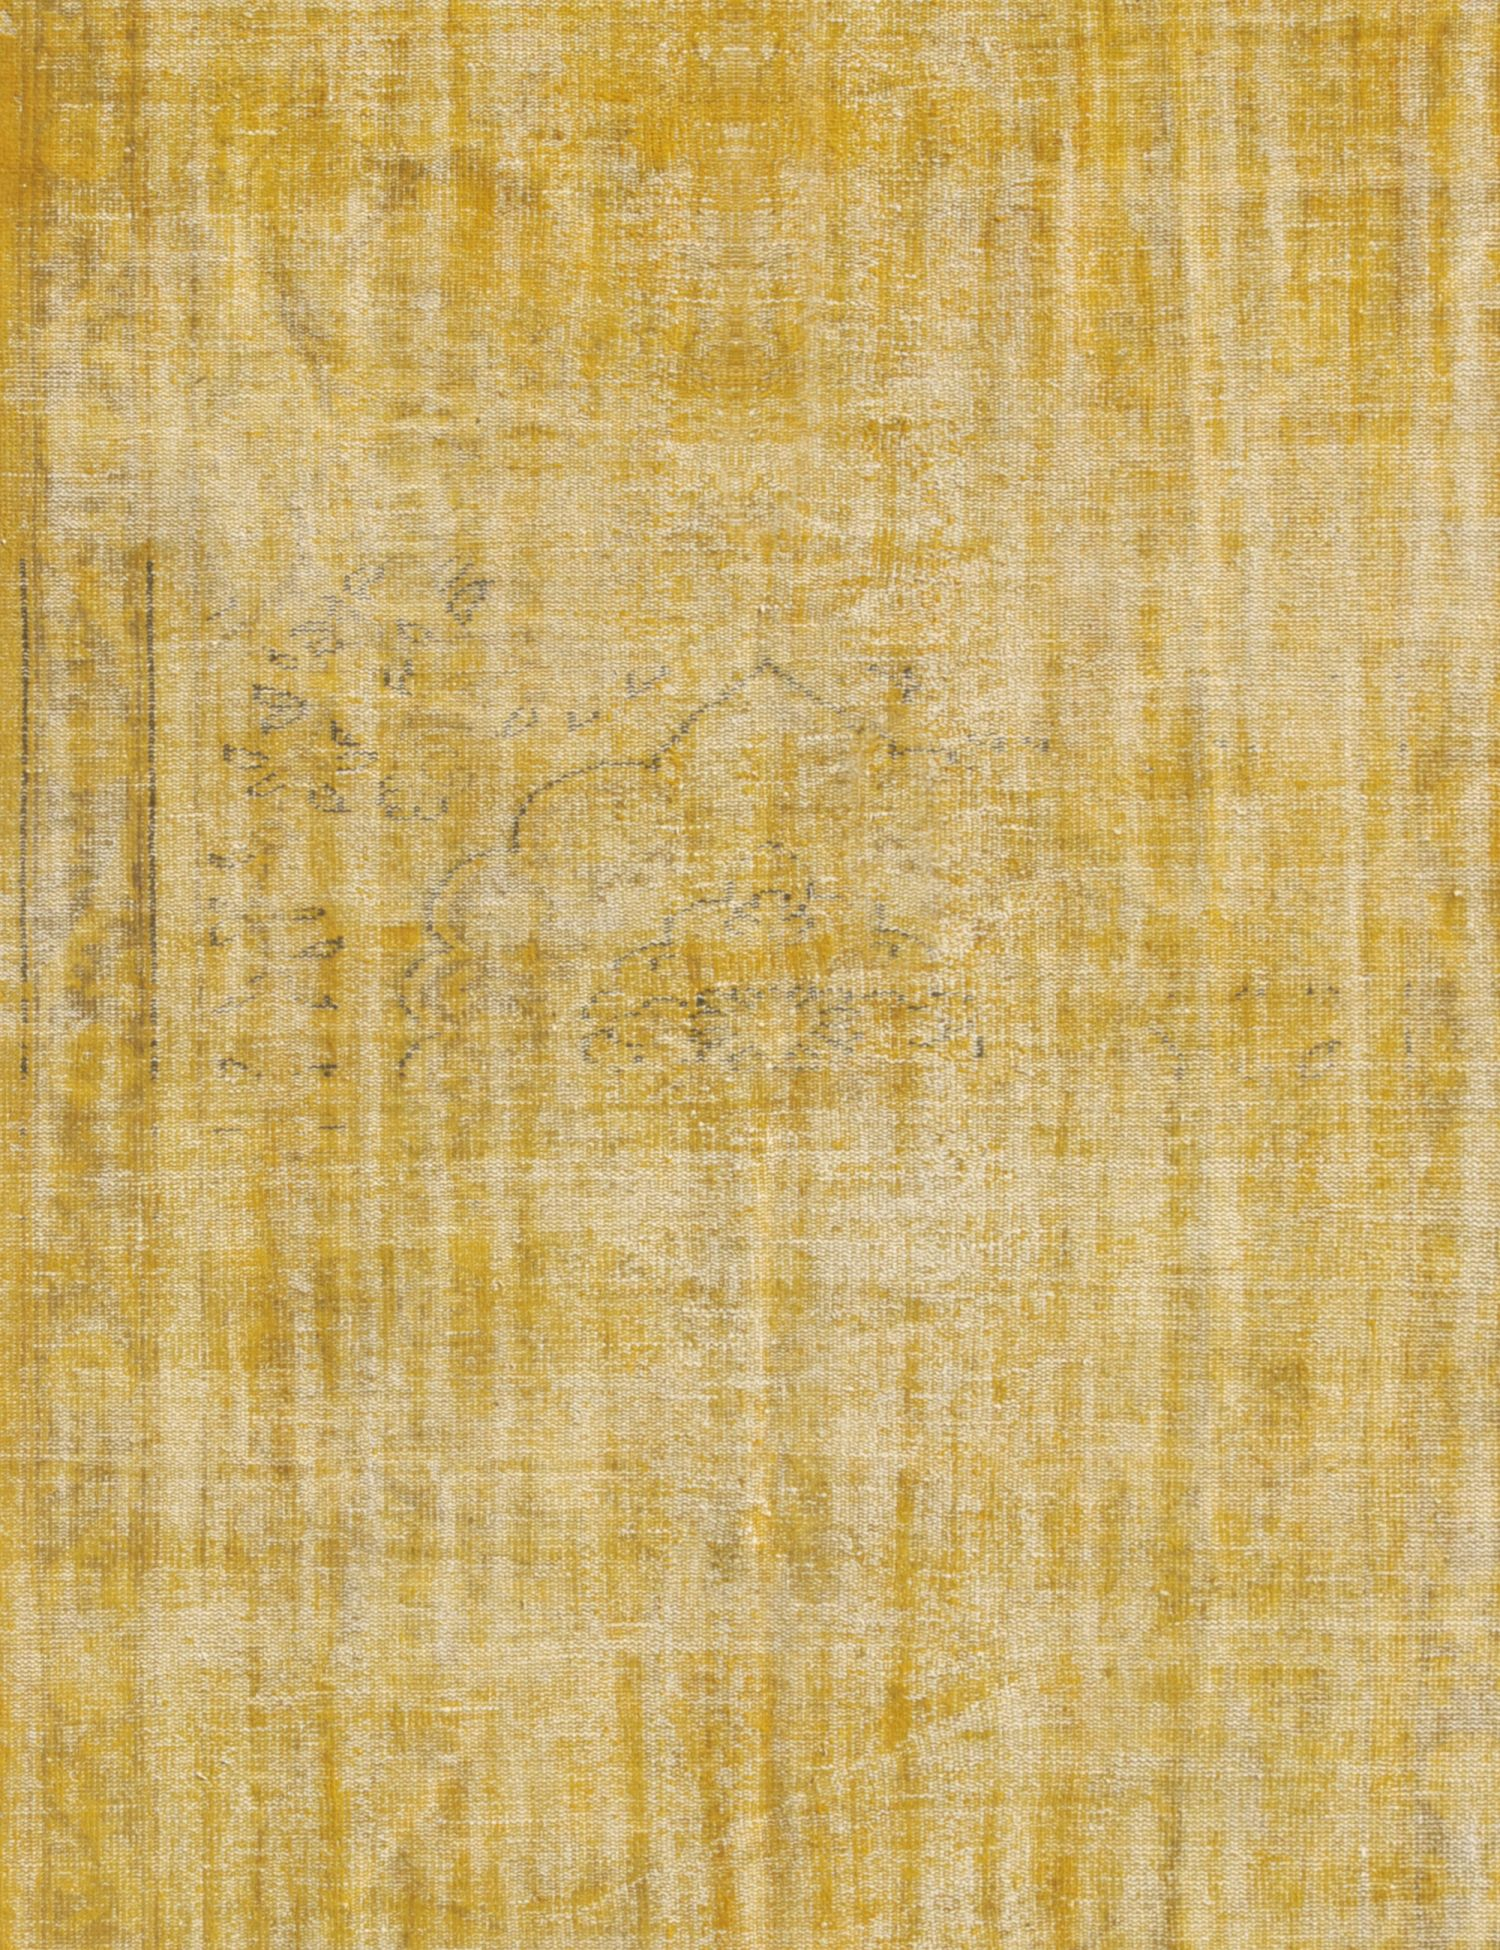 Vintage Carpet  yellow <br/>270 x 184 cm